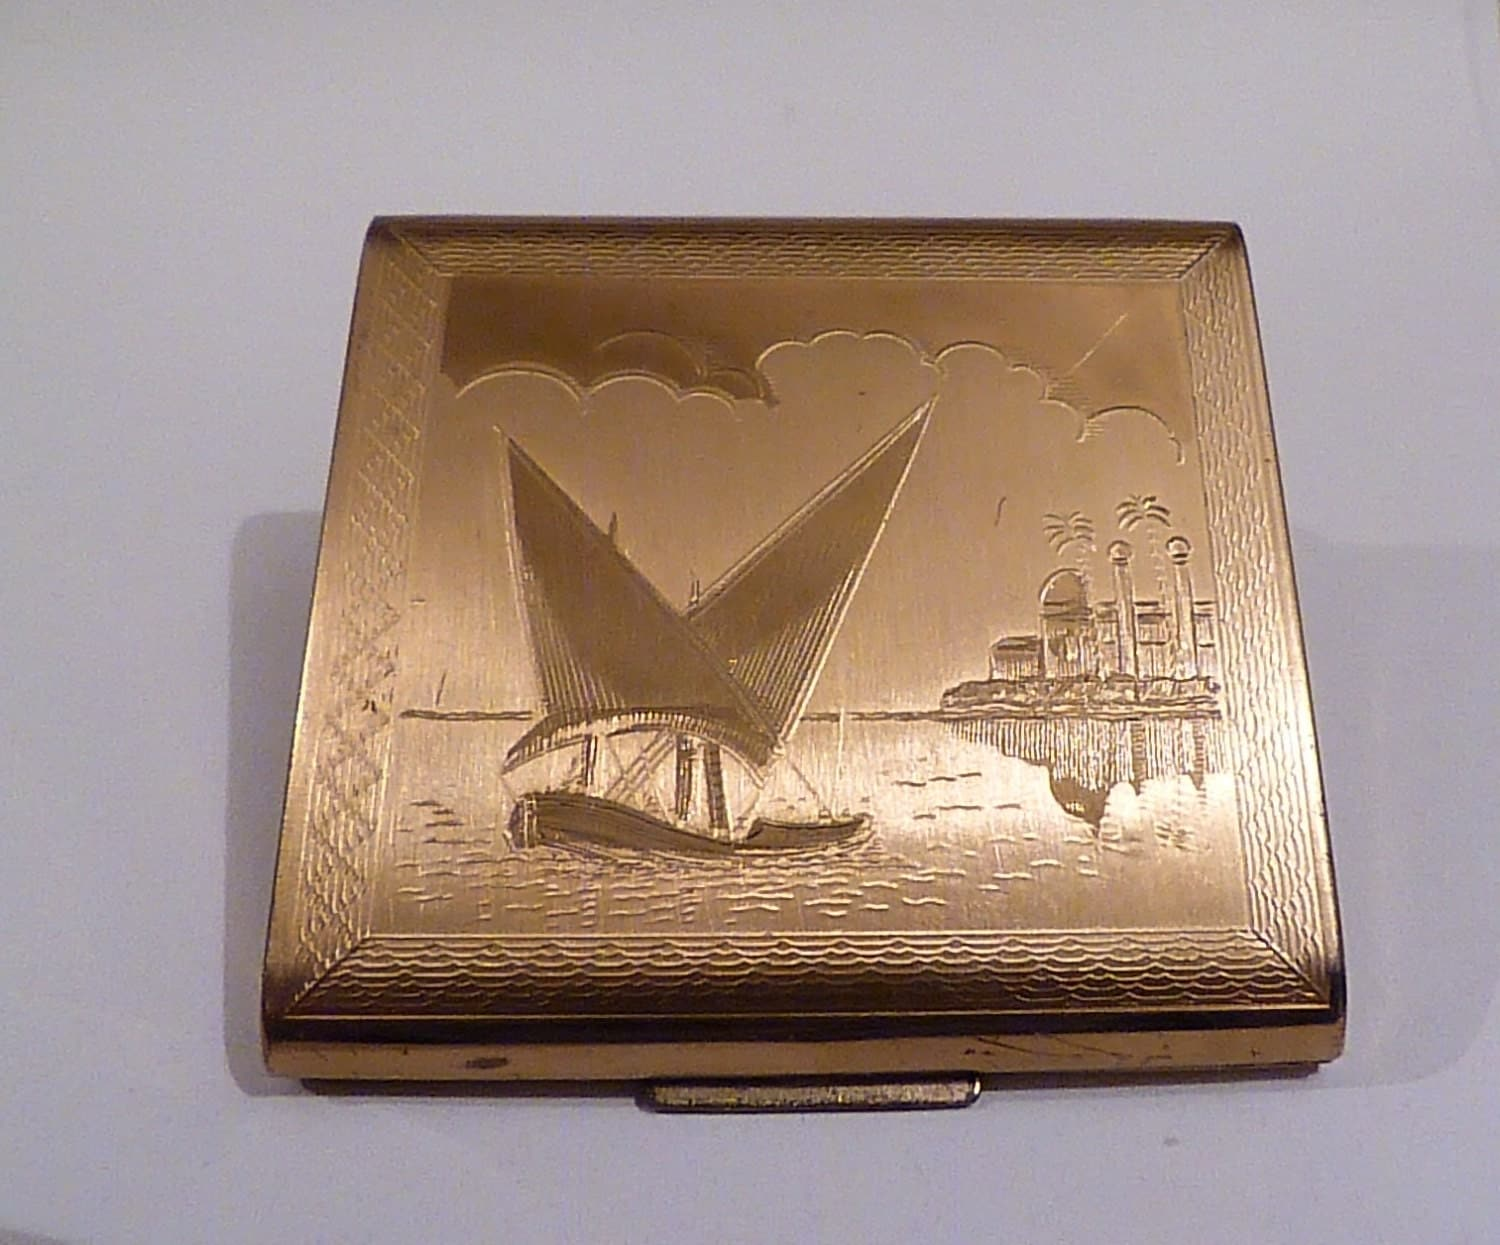 Vintage compacts Zenette ship  boat compact mirror bridesmaids gifts vintage wedding presents